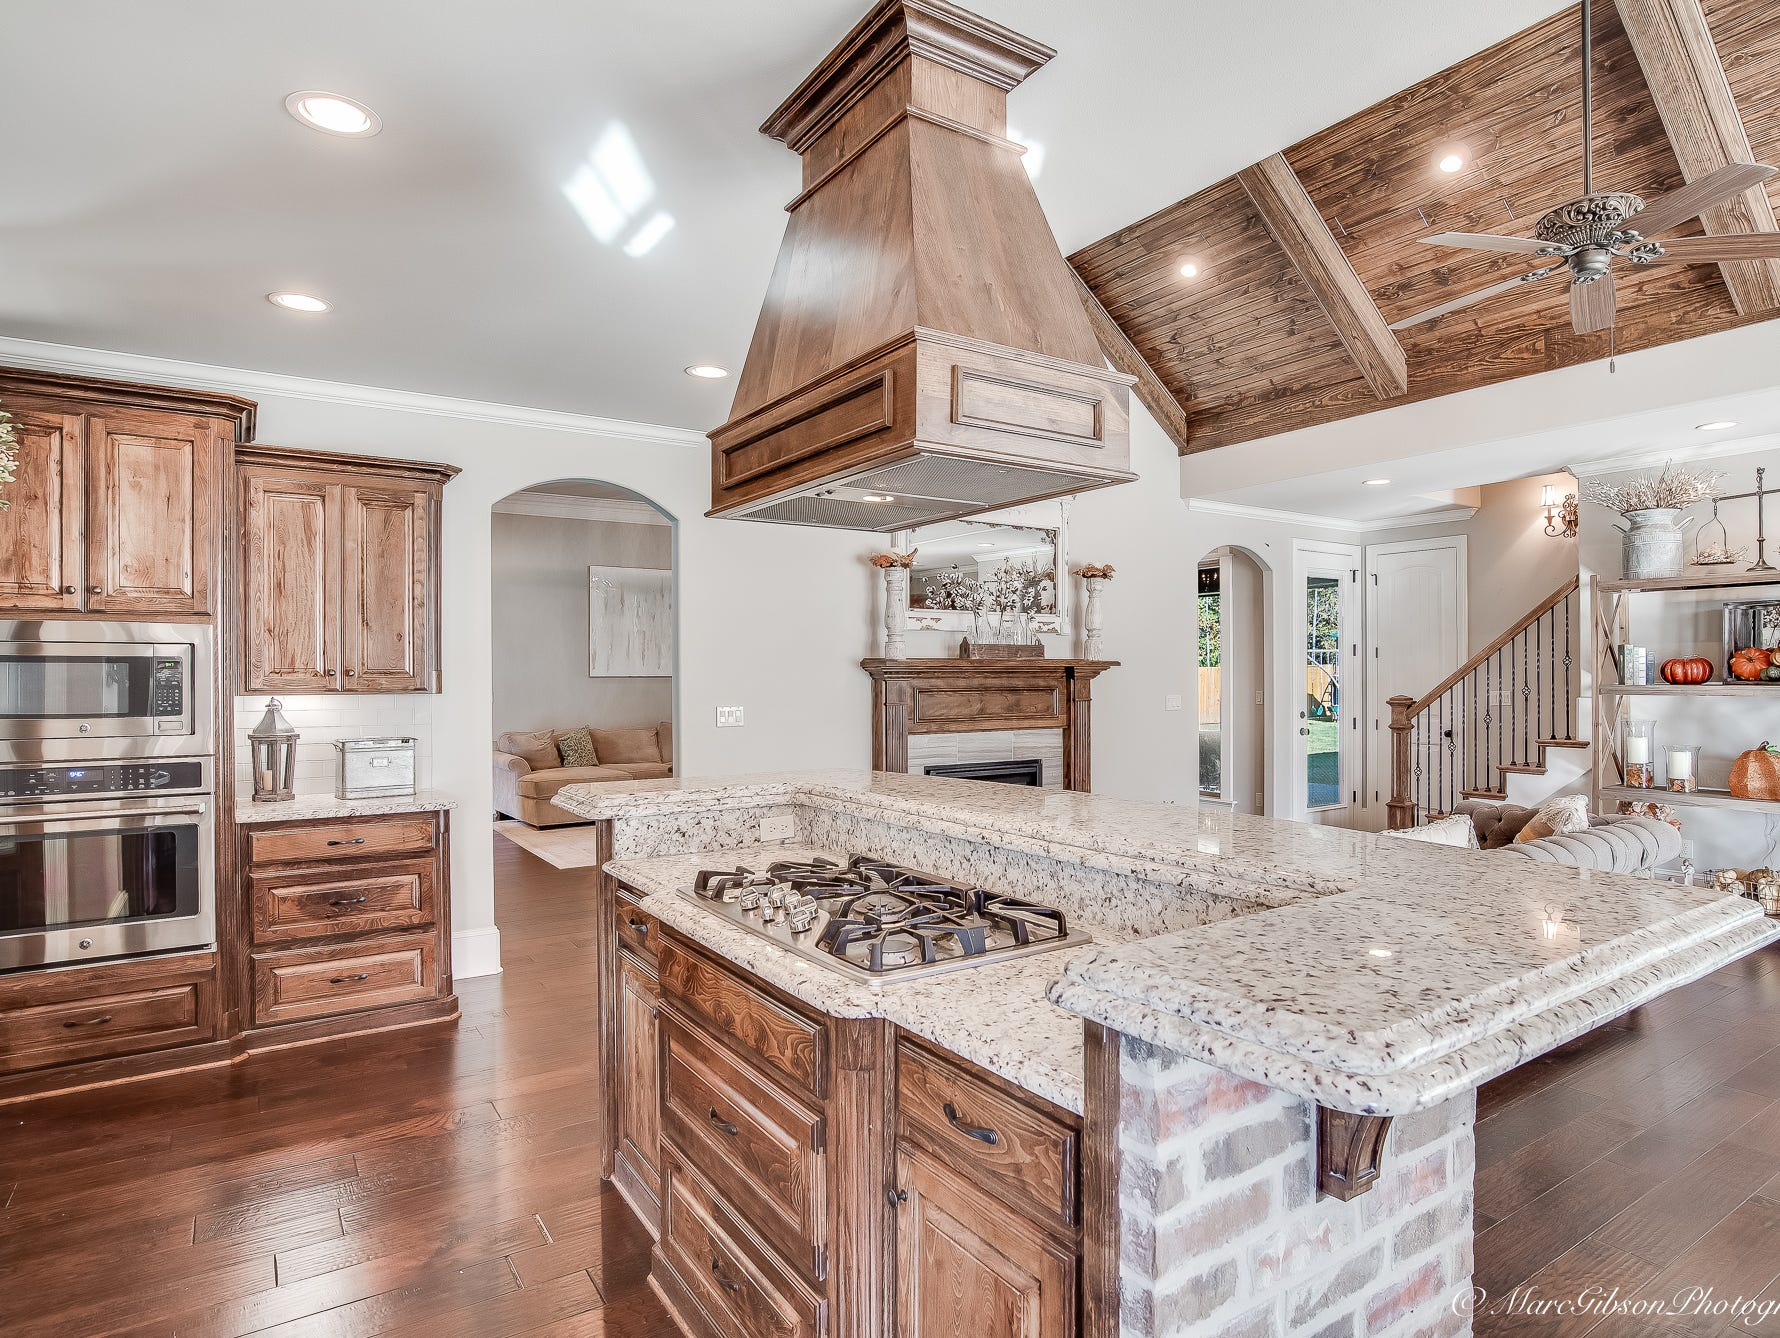 1030 Towhee Drive,   Shreveport  Price: $575,000  Details: 5 bedrooms, 4 bathrooms, 3,681 square feet  Special features: Long Lake living with open kitchen,  remote master suite with custom ceiling treatment,  outdoor kitchen and entertaining patio.  Contact: Lynn Roos,   455-6004